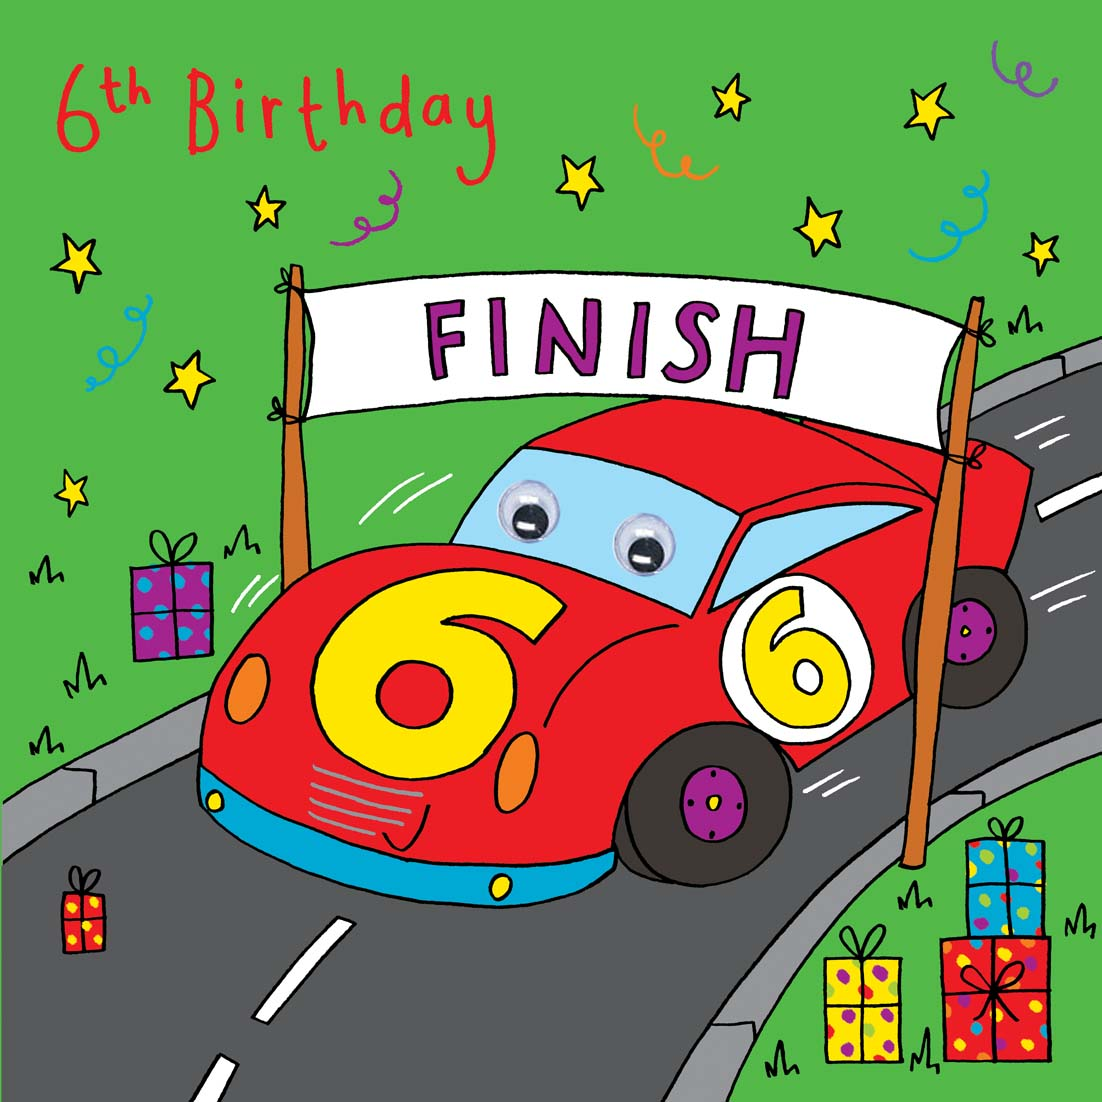 Kids Cards Kids Birthday Cards – 6 Year Old Birthday Card